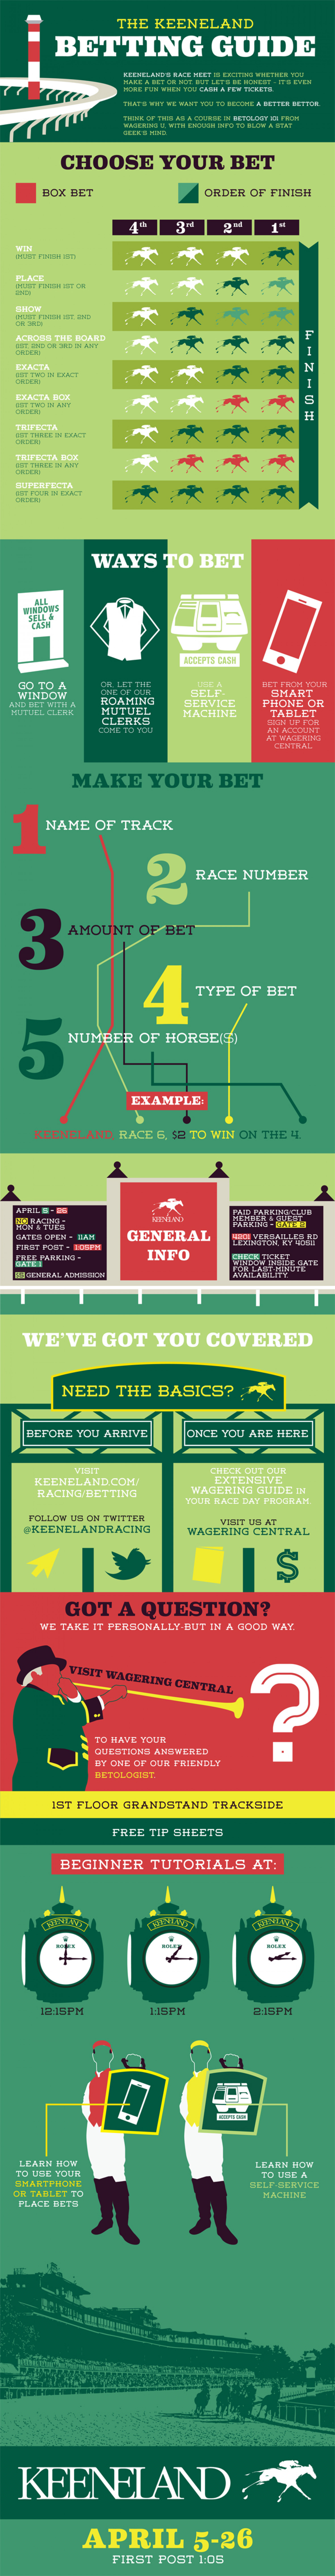 The Keeneland Betting Guide Infographic